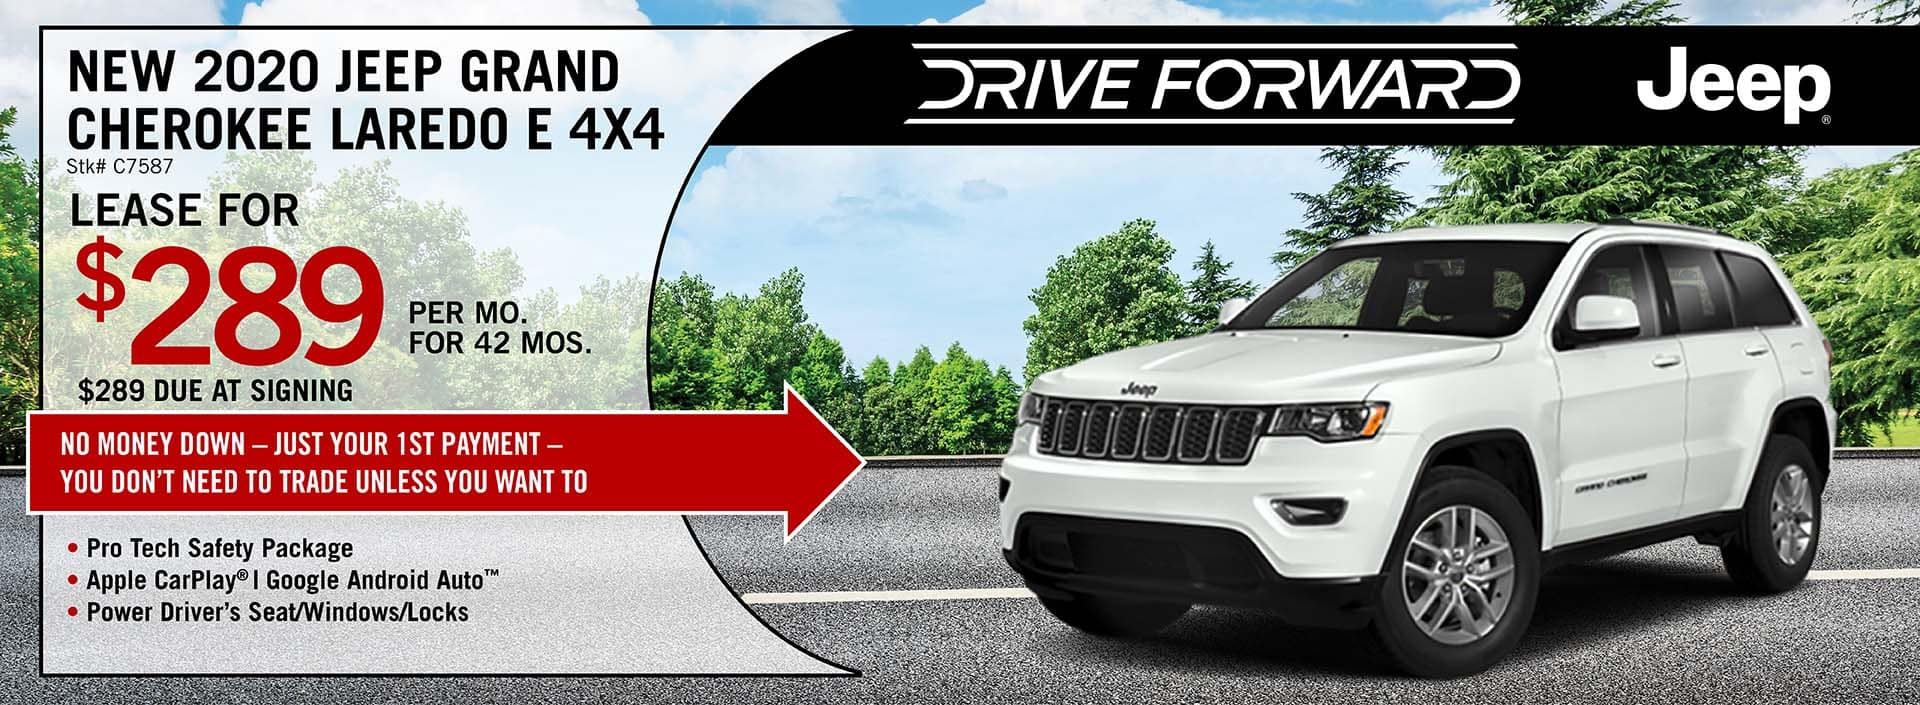 2020 Jeep Grand Cherokee Laredo AWD